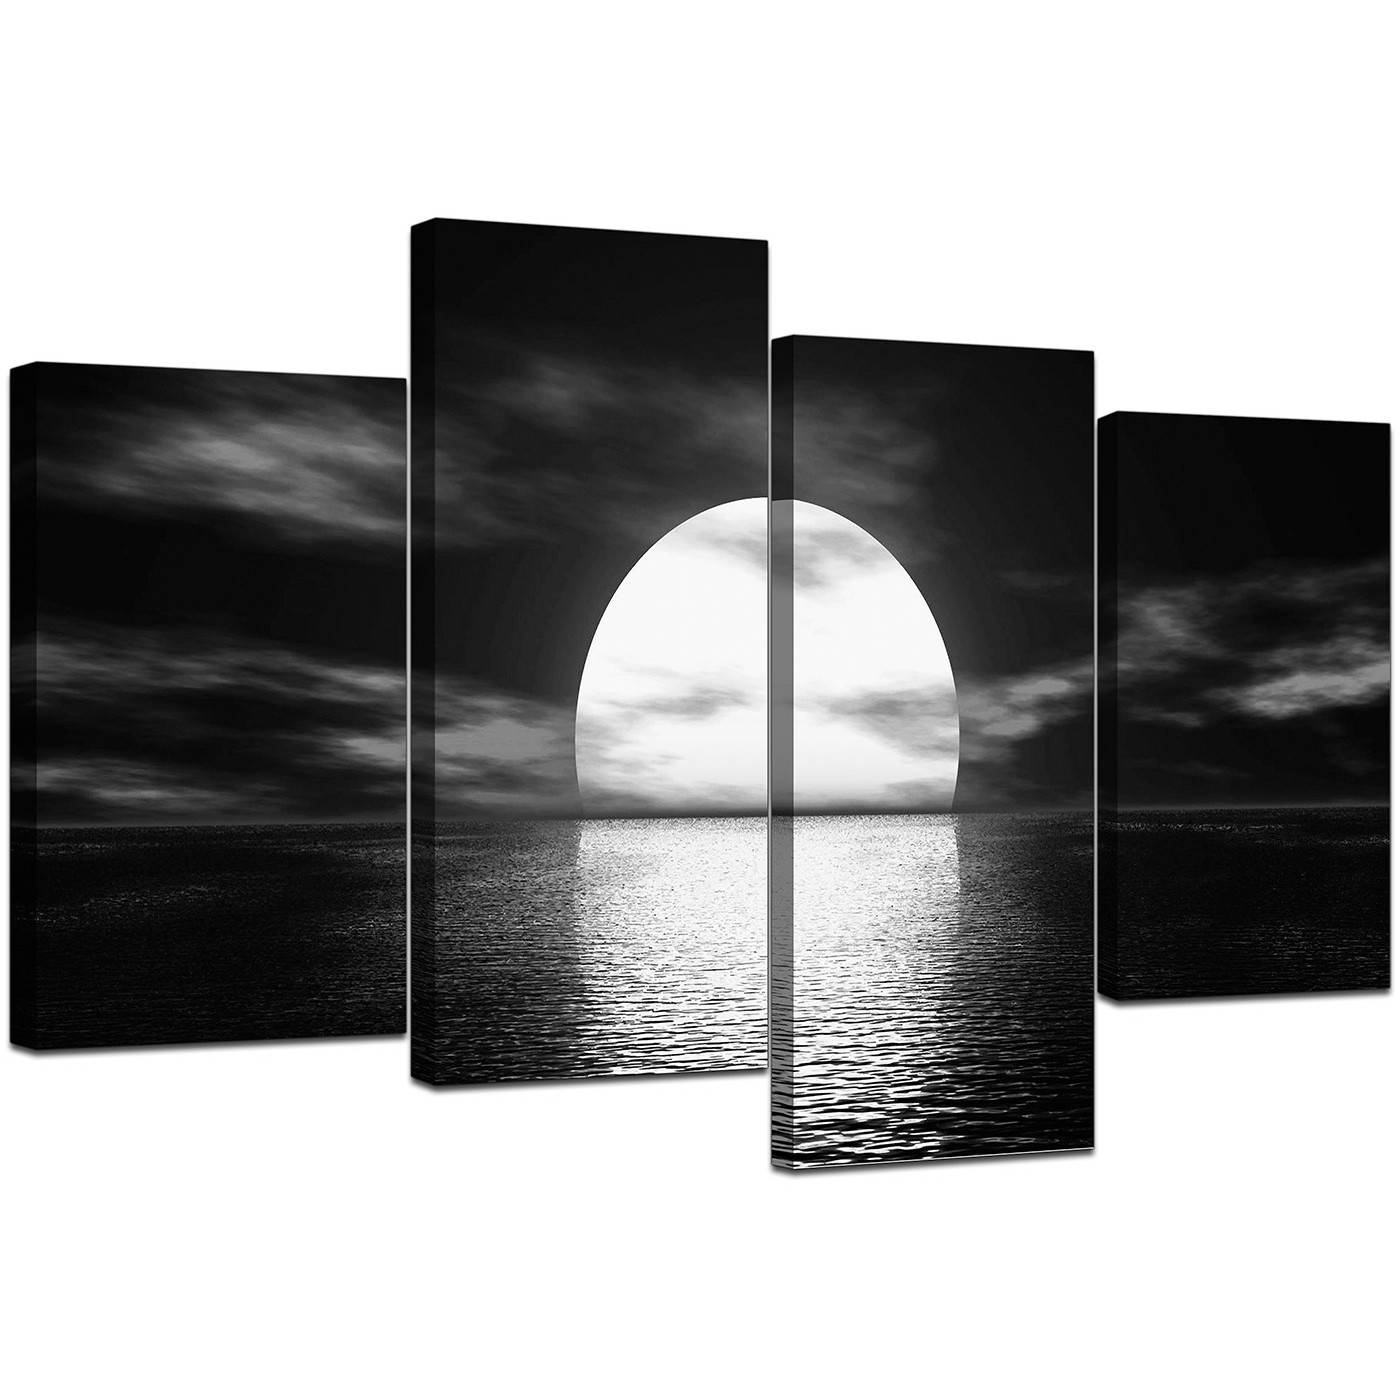 Black And White Canvas – Ocean Sunset Canvas Wall Art Within 2018 Large Black And White Wall Art (Gallery 2 of 20)